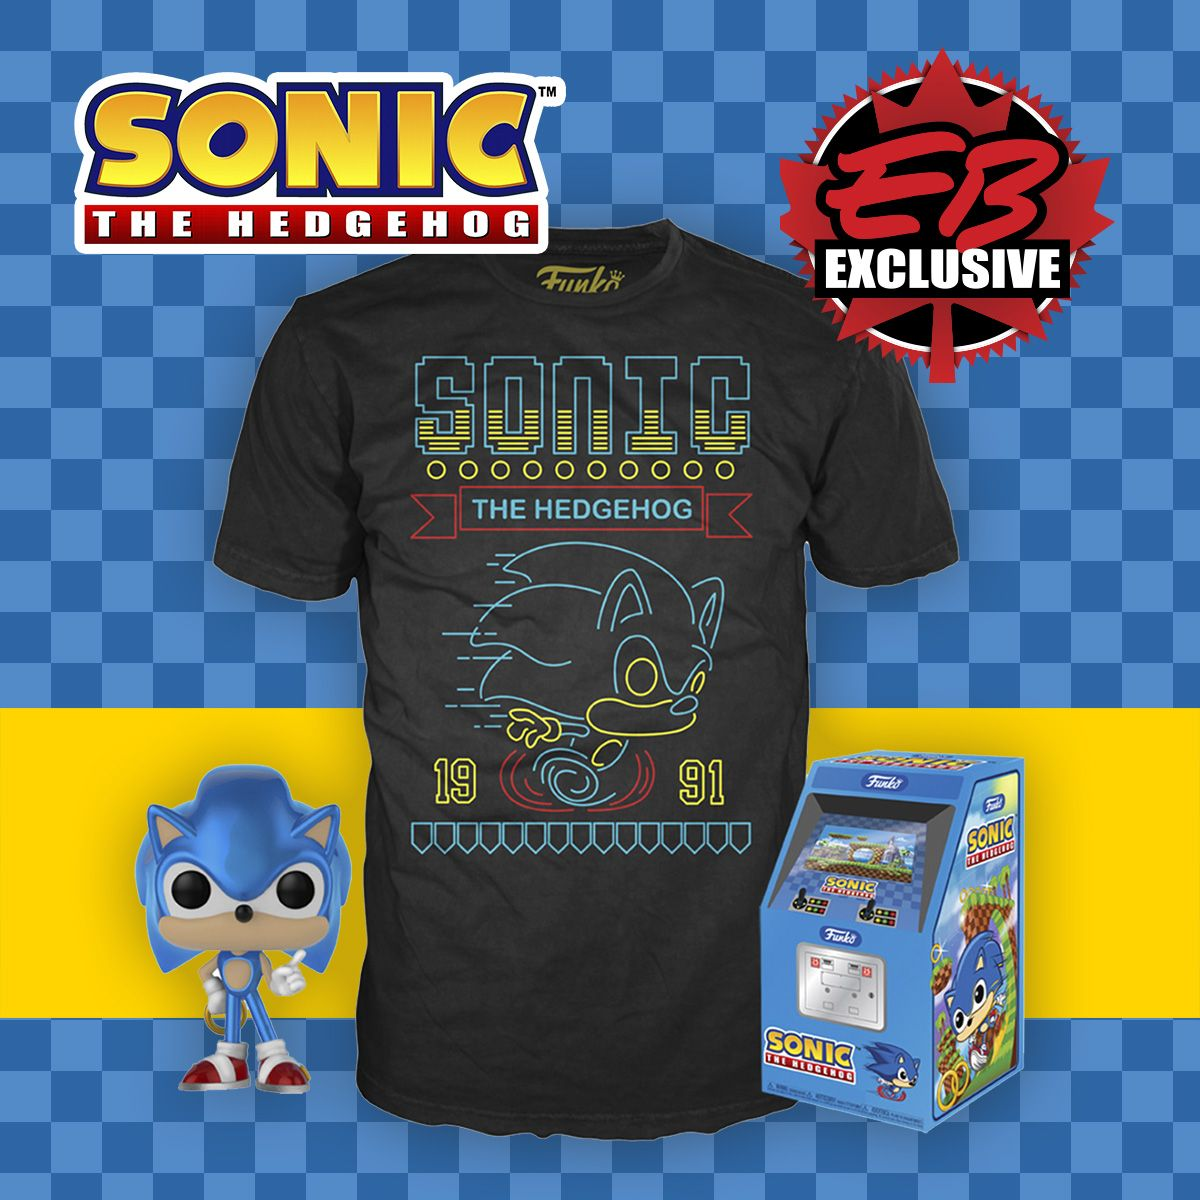 f301616e9 Limited quantities of the POP! & Tee: Sonic The Hedgehog - Neon Run T-Shirt  are available online here: http://bit.ly/2OlTJNa Available in stores this  ...